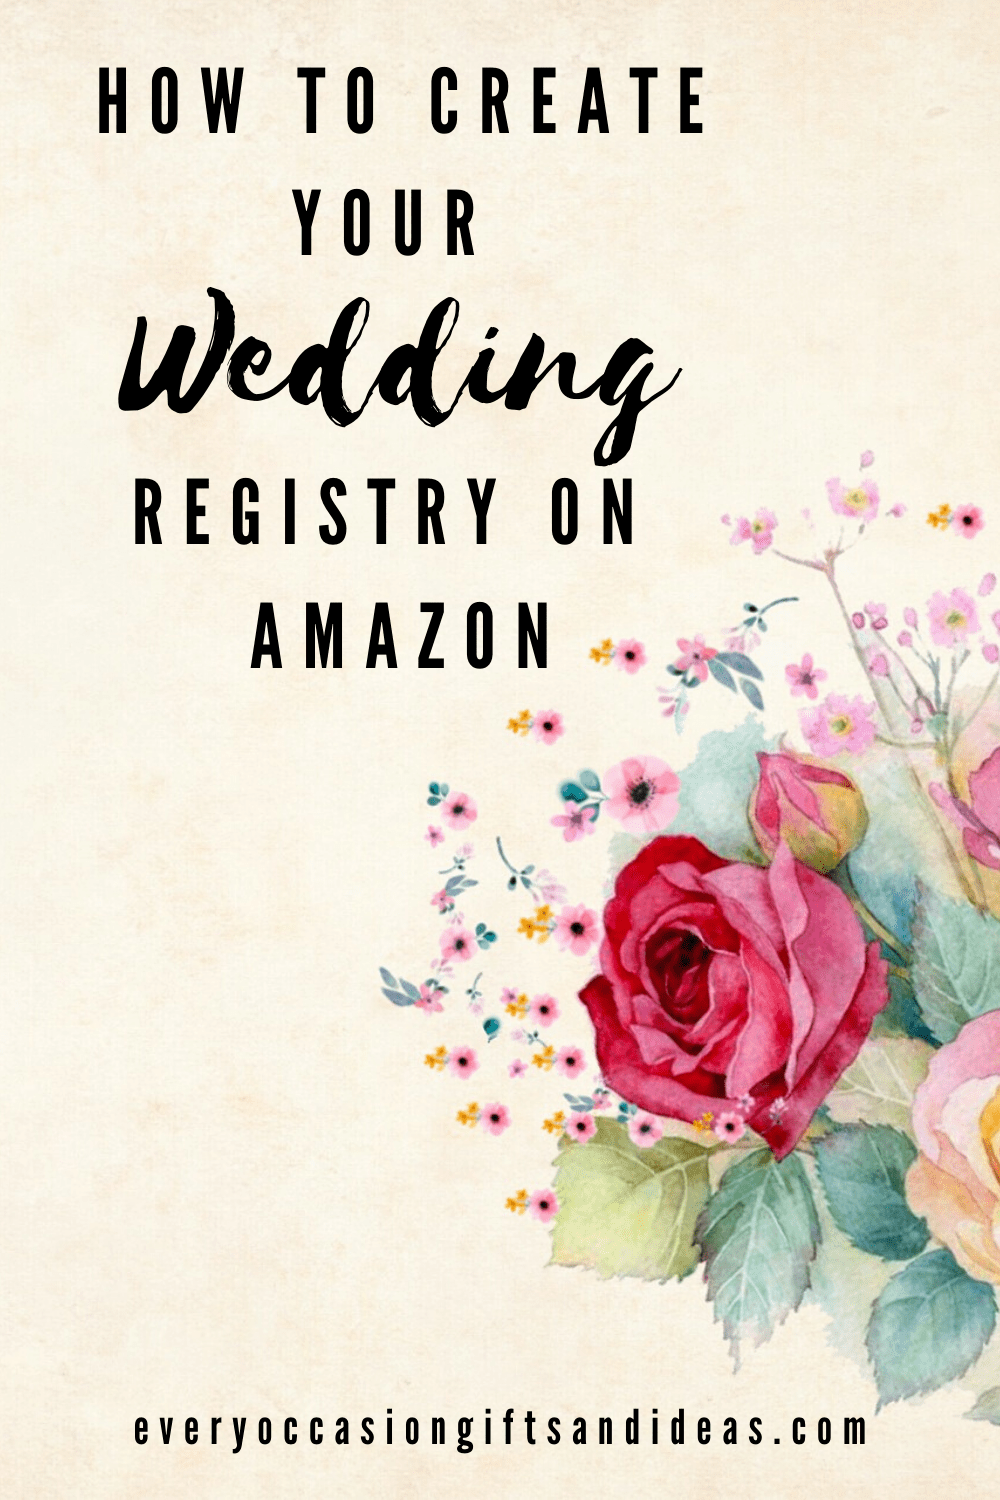 Wedding Registry On Amazon How To Set Up Your Bridal Registry And Share It Amazon Bridal Registry Bridal Registry Amazon Wedding Registry